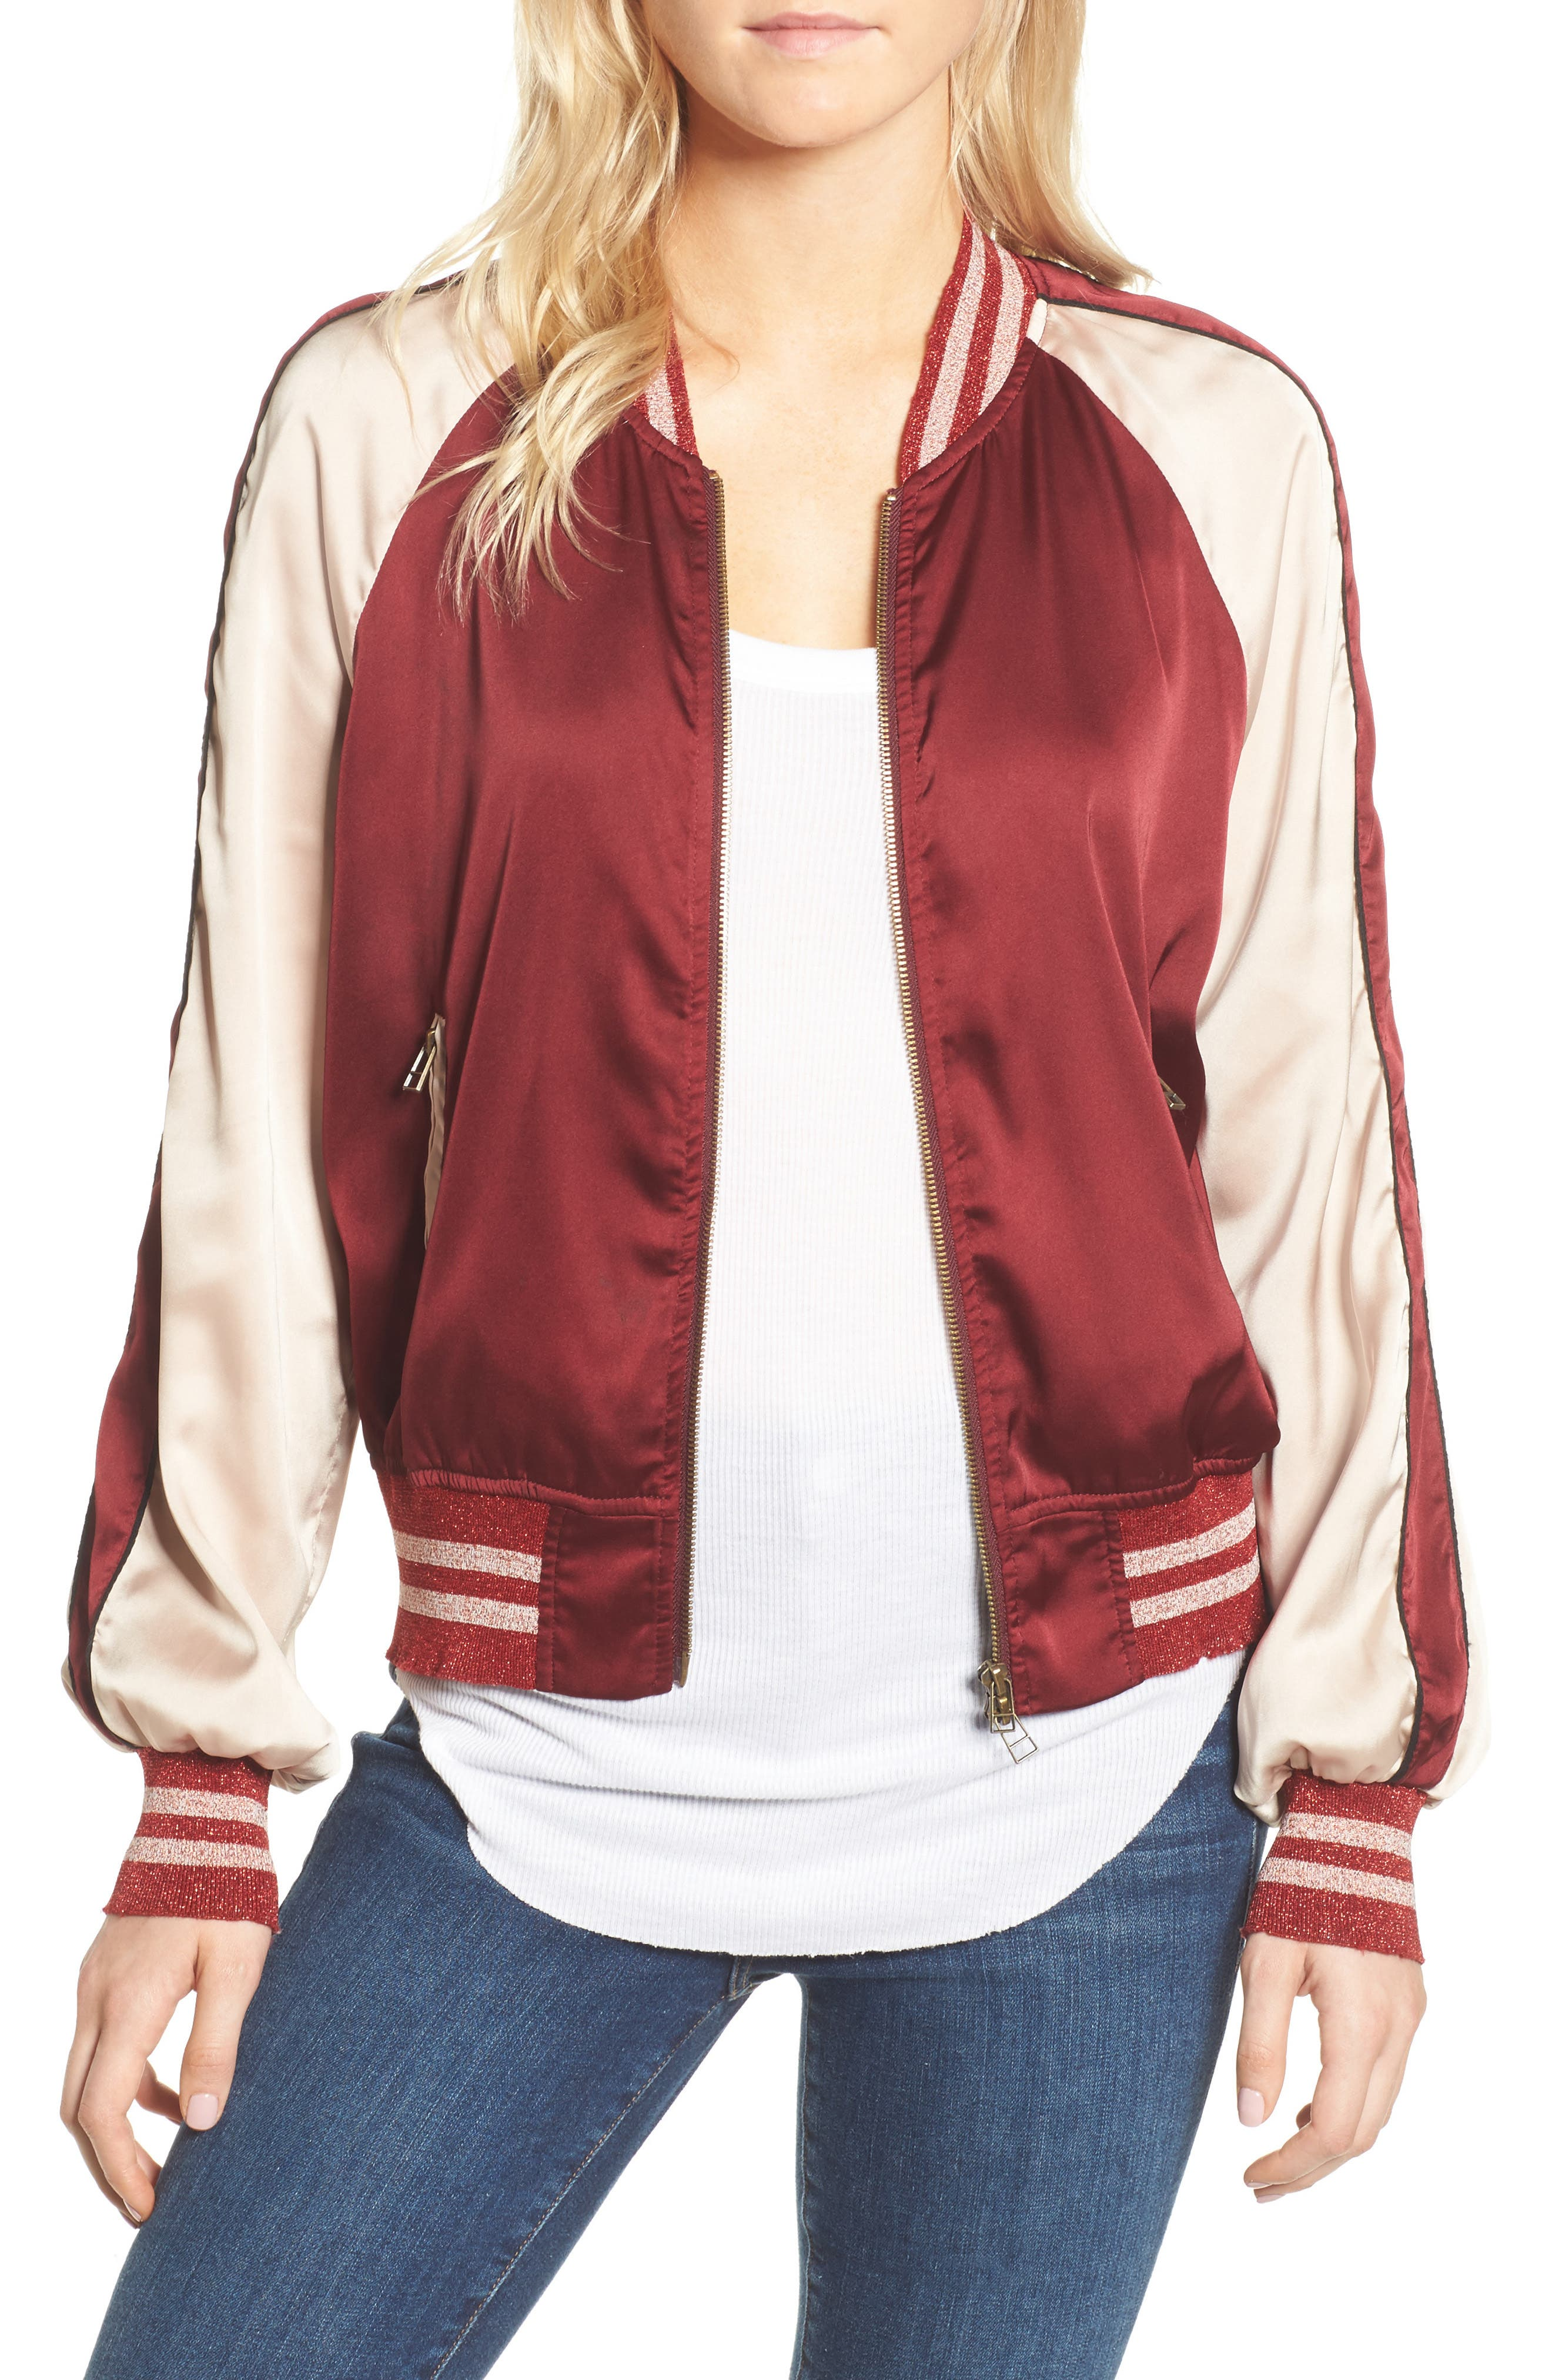 Los Feliz Tigers Bomber Jacket,                         Main,                         color, Maroon